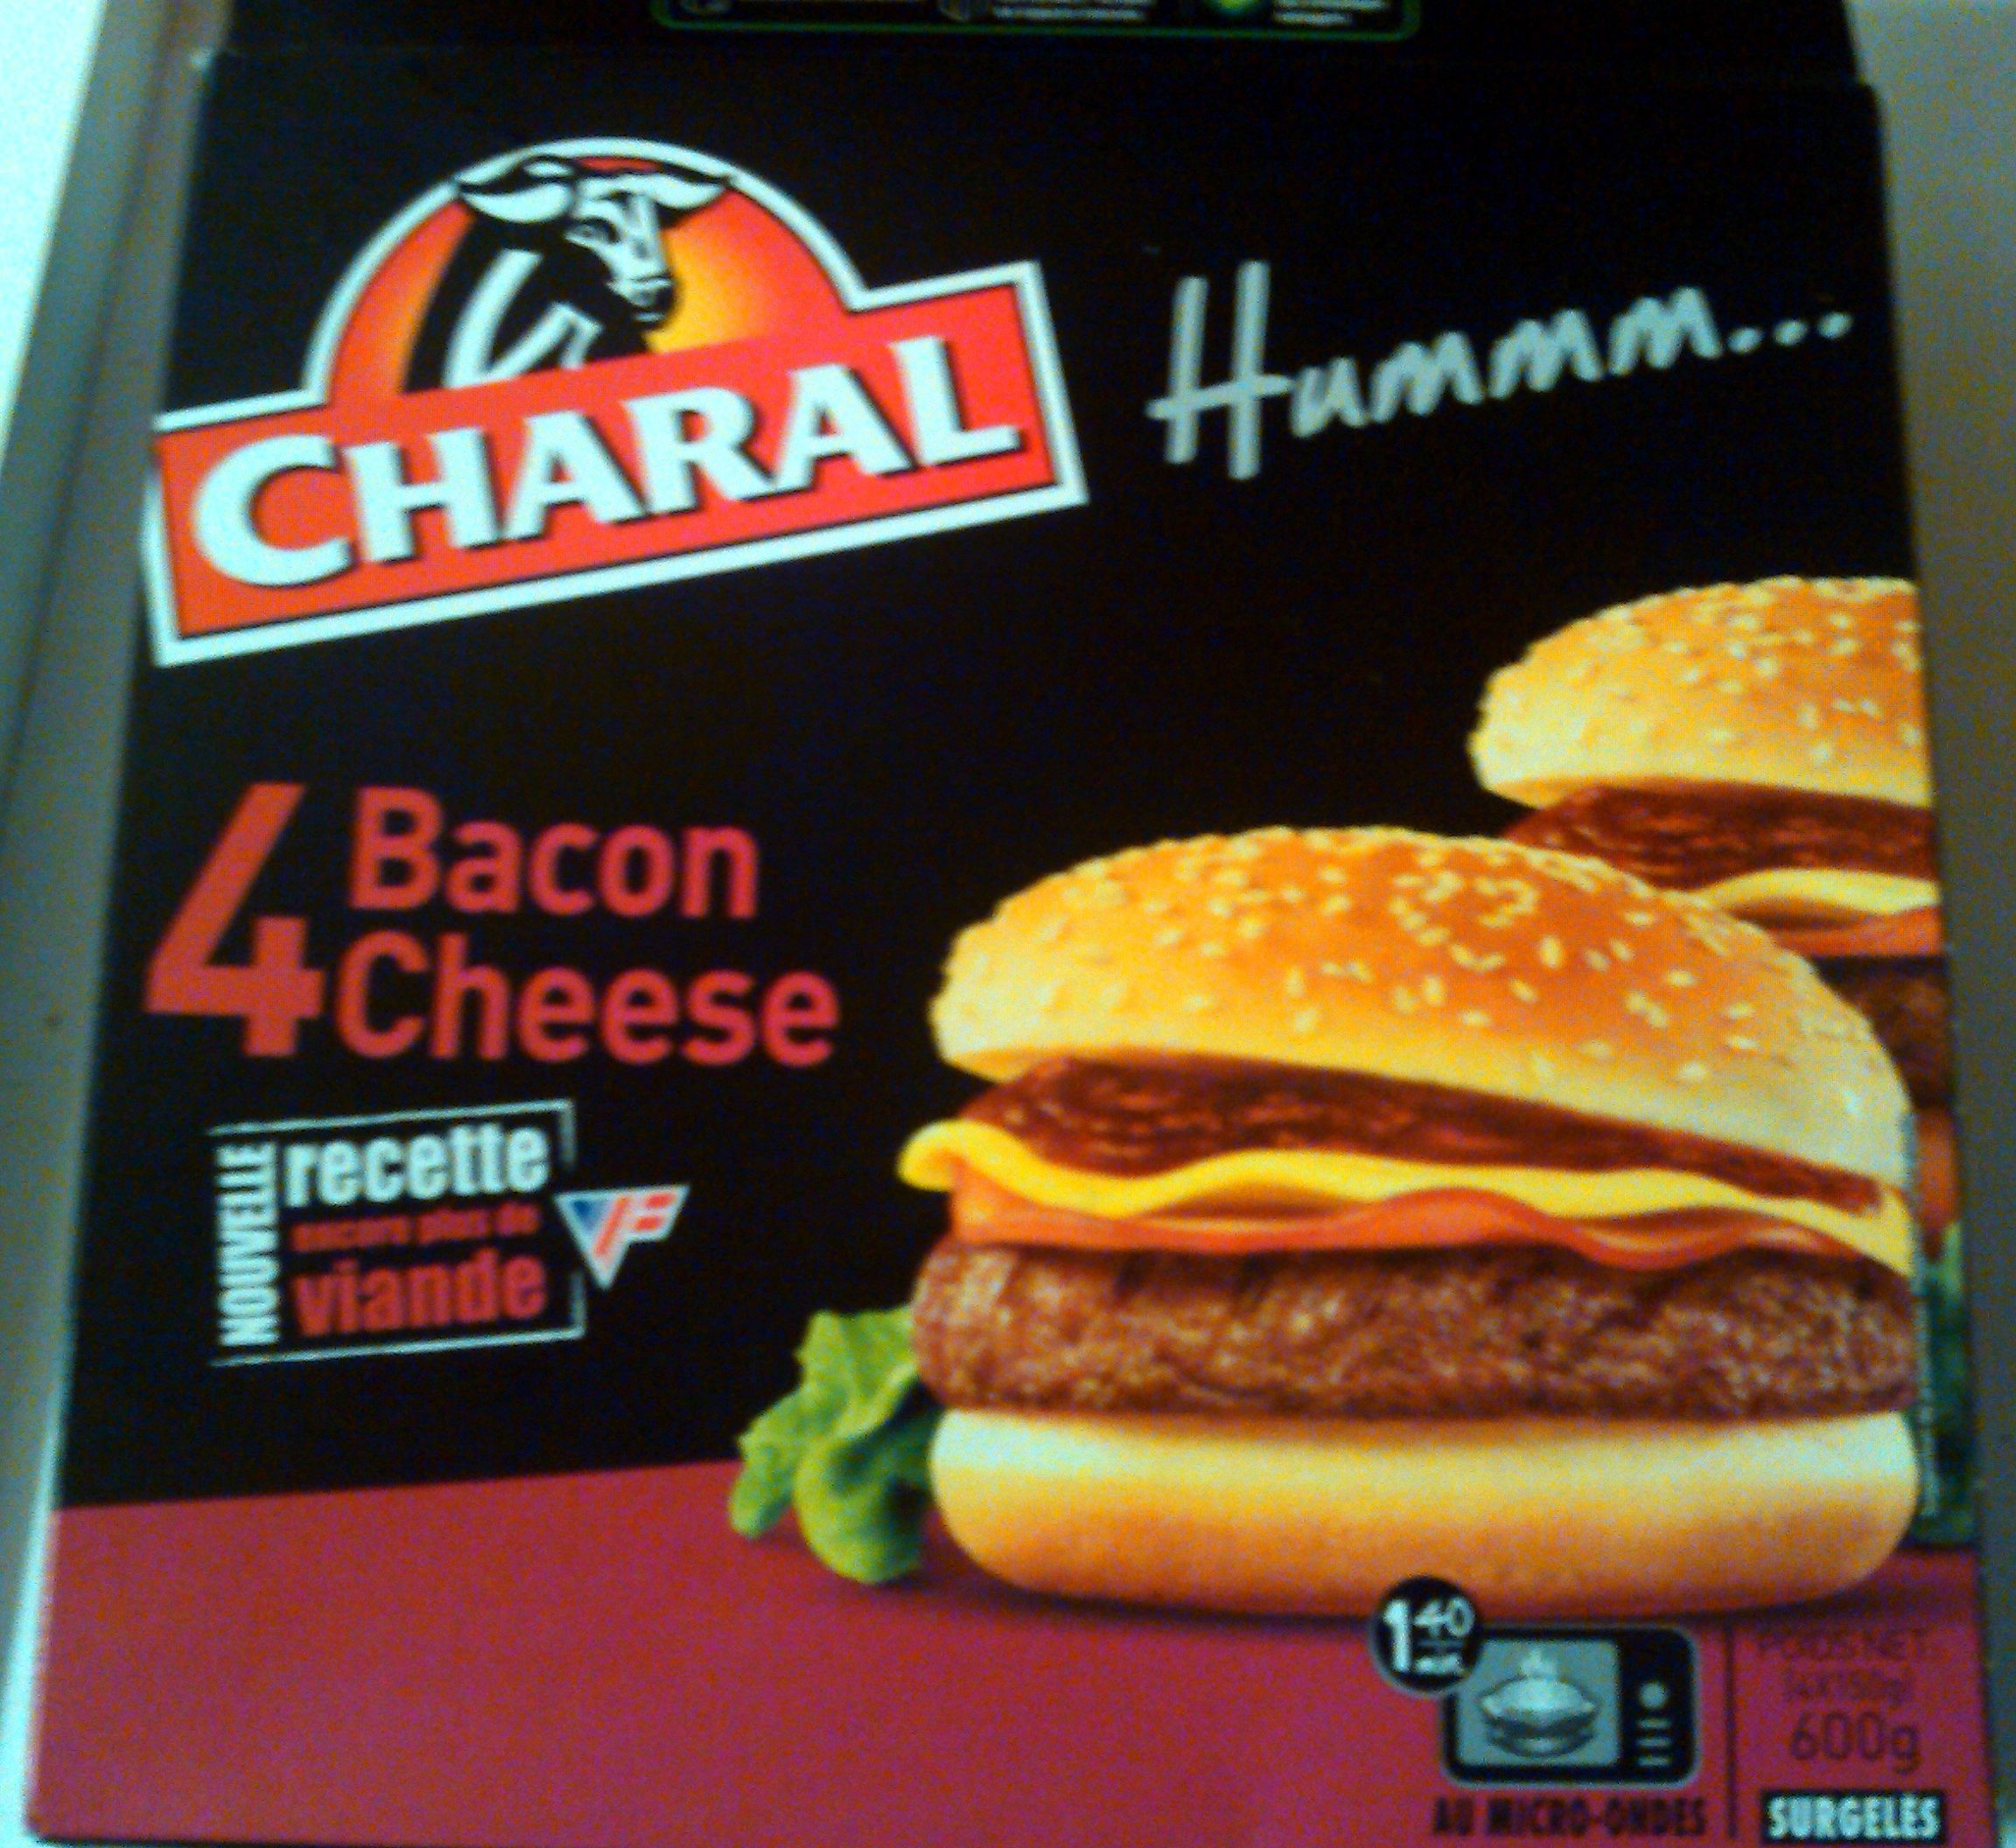 4 bacon cheese - CHARAL - 600g